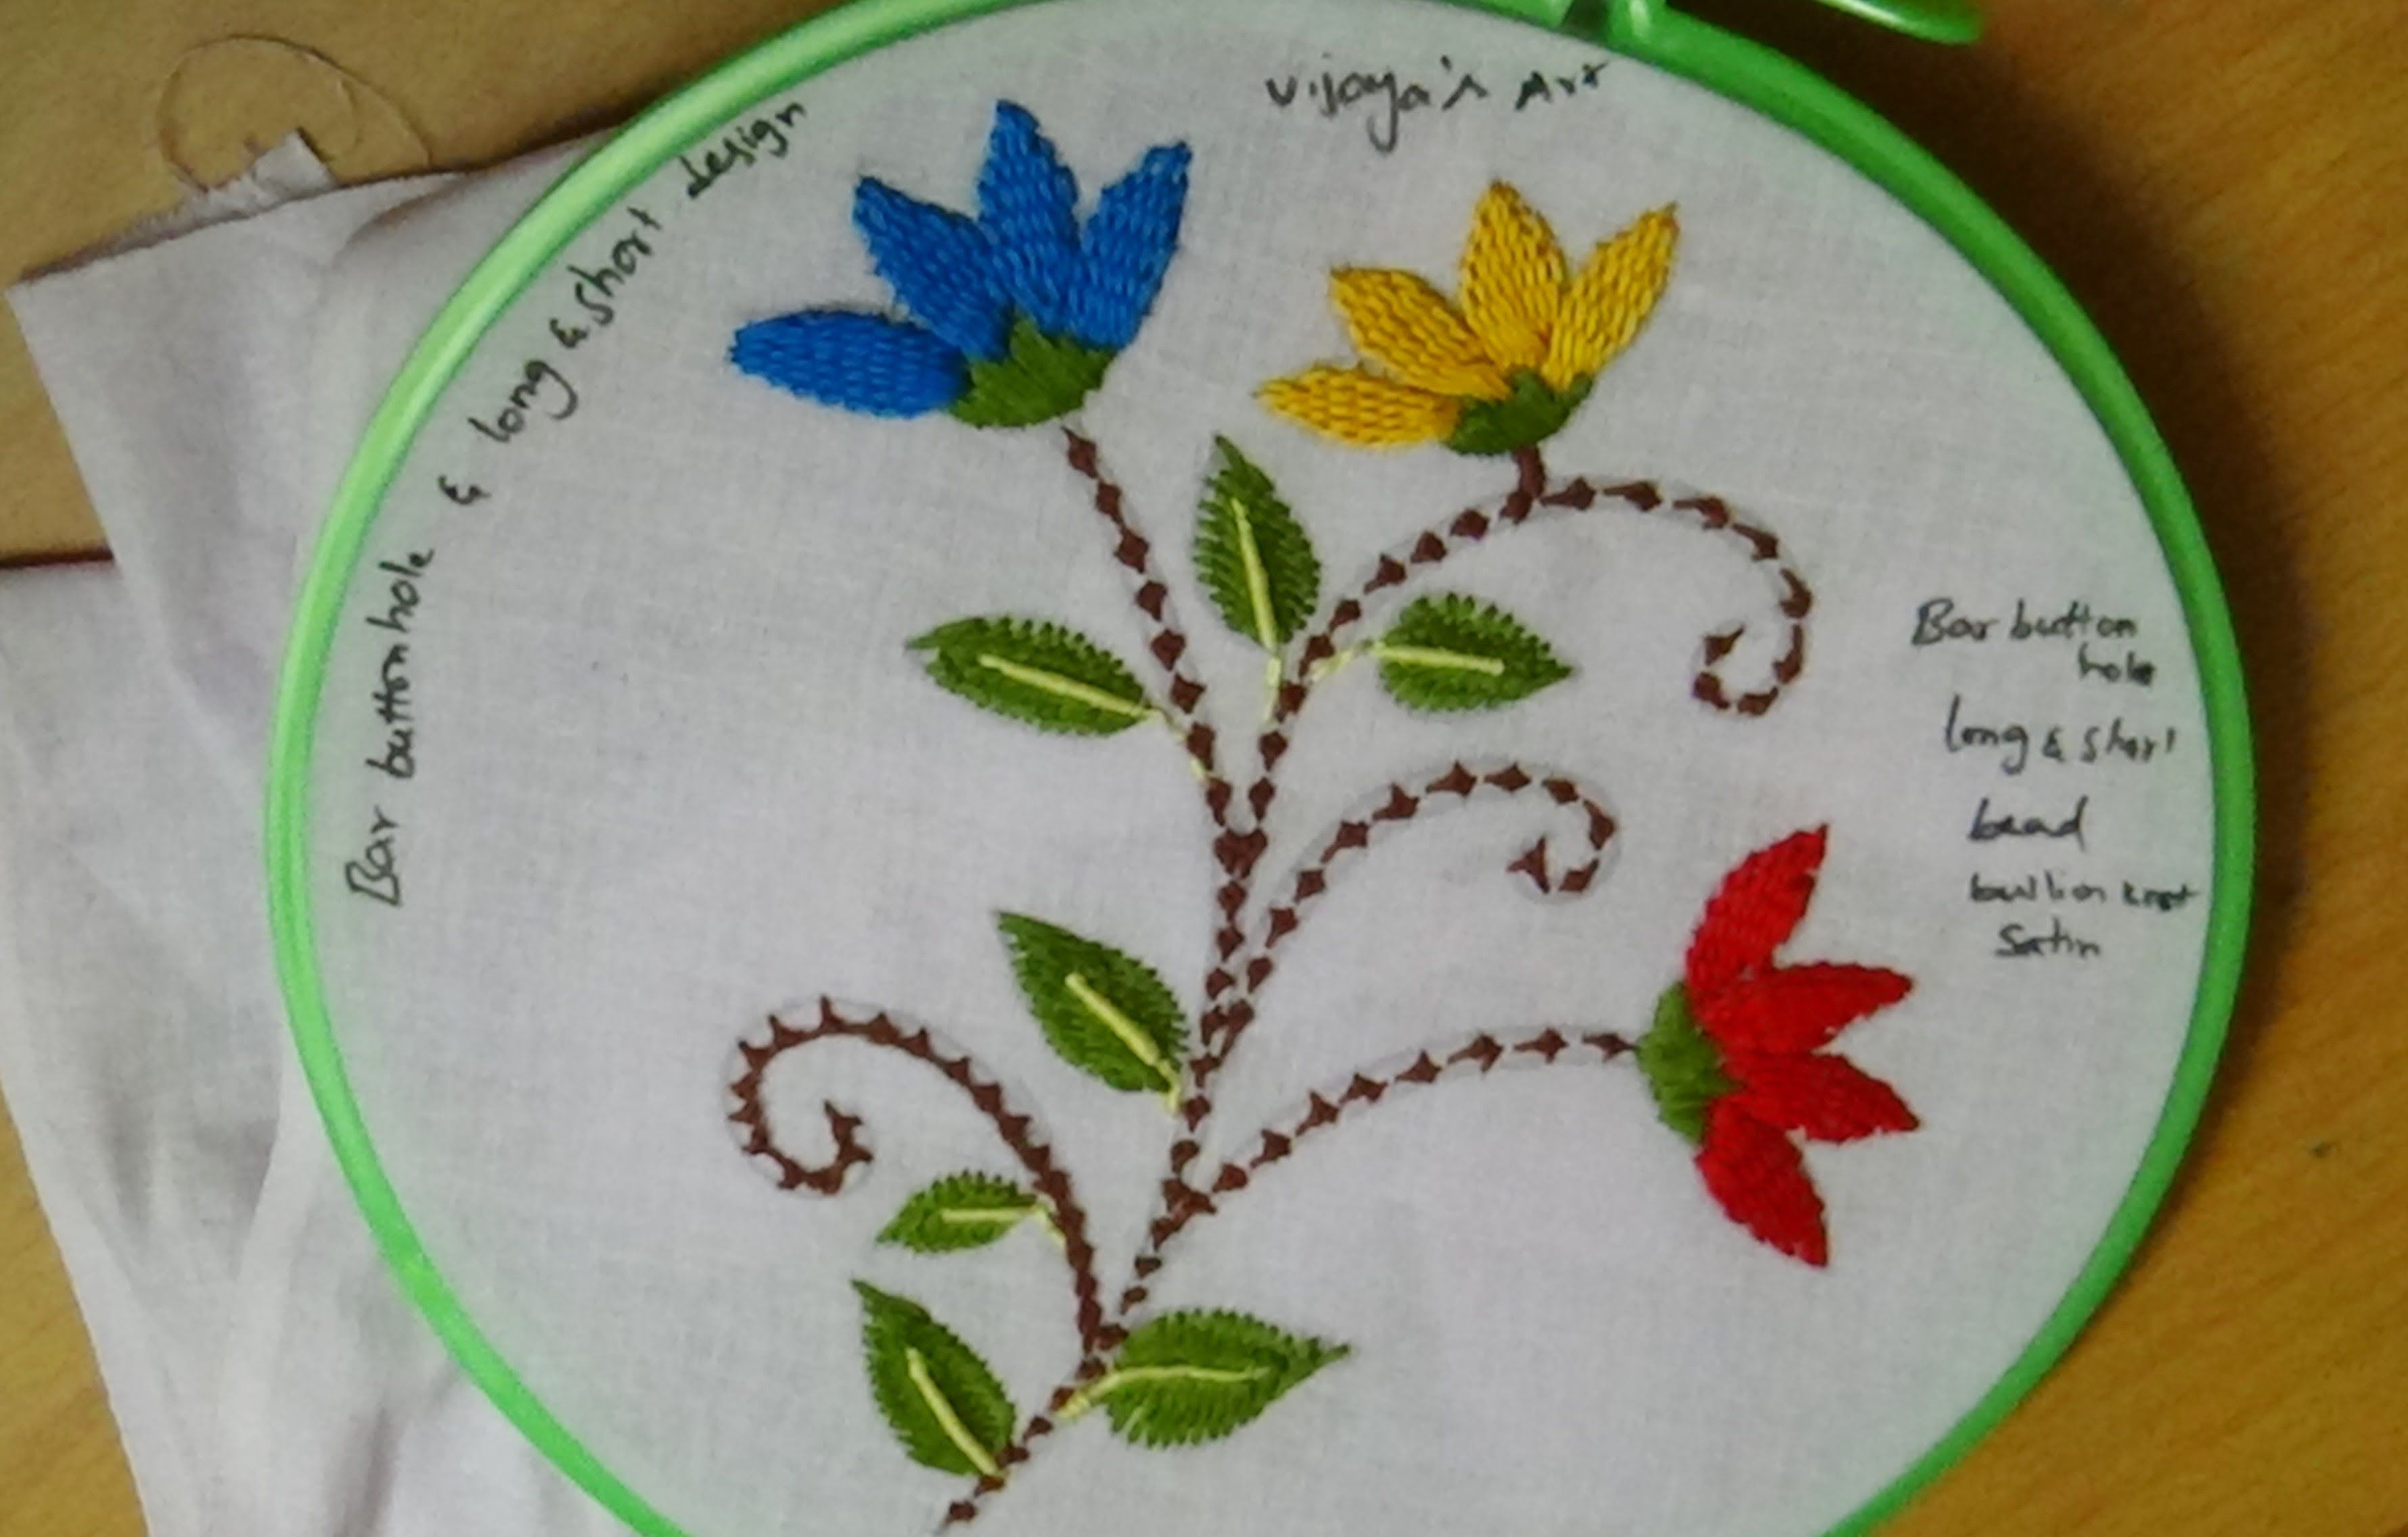 Hand embroidery designs bar buttonhole long